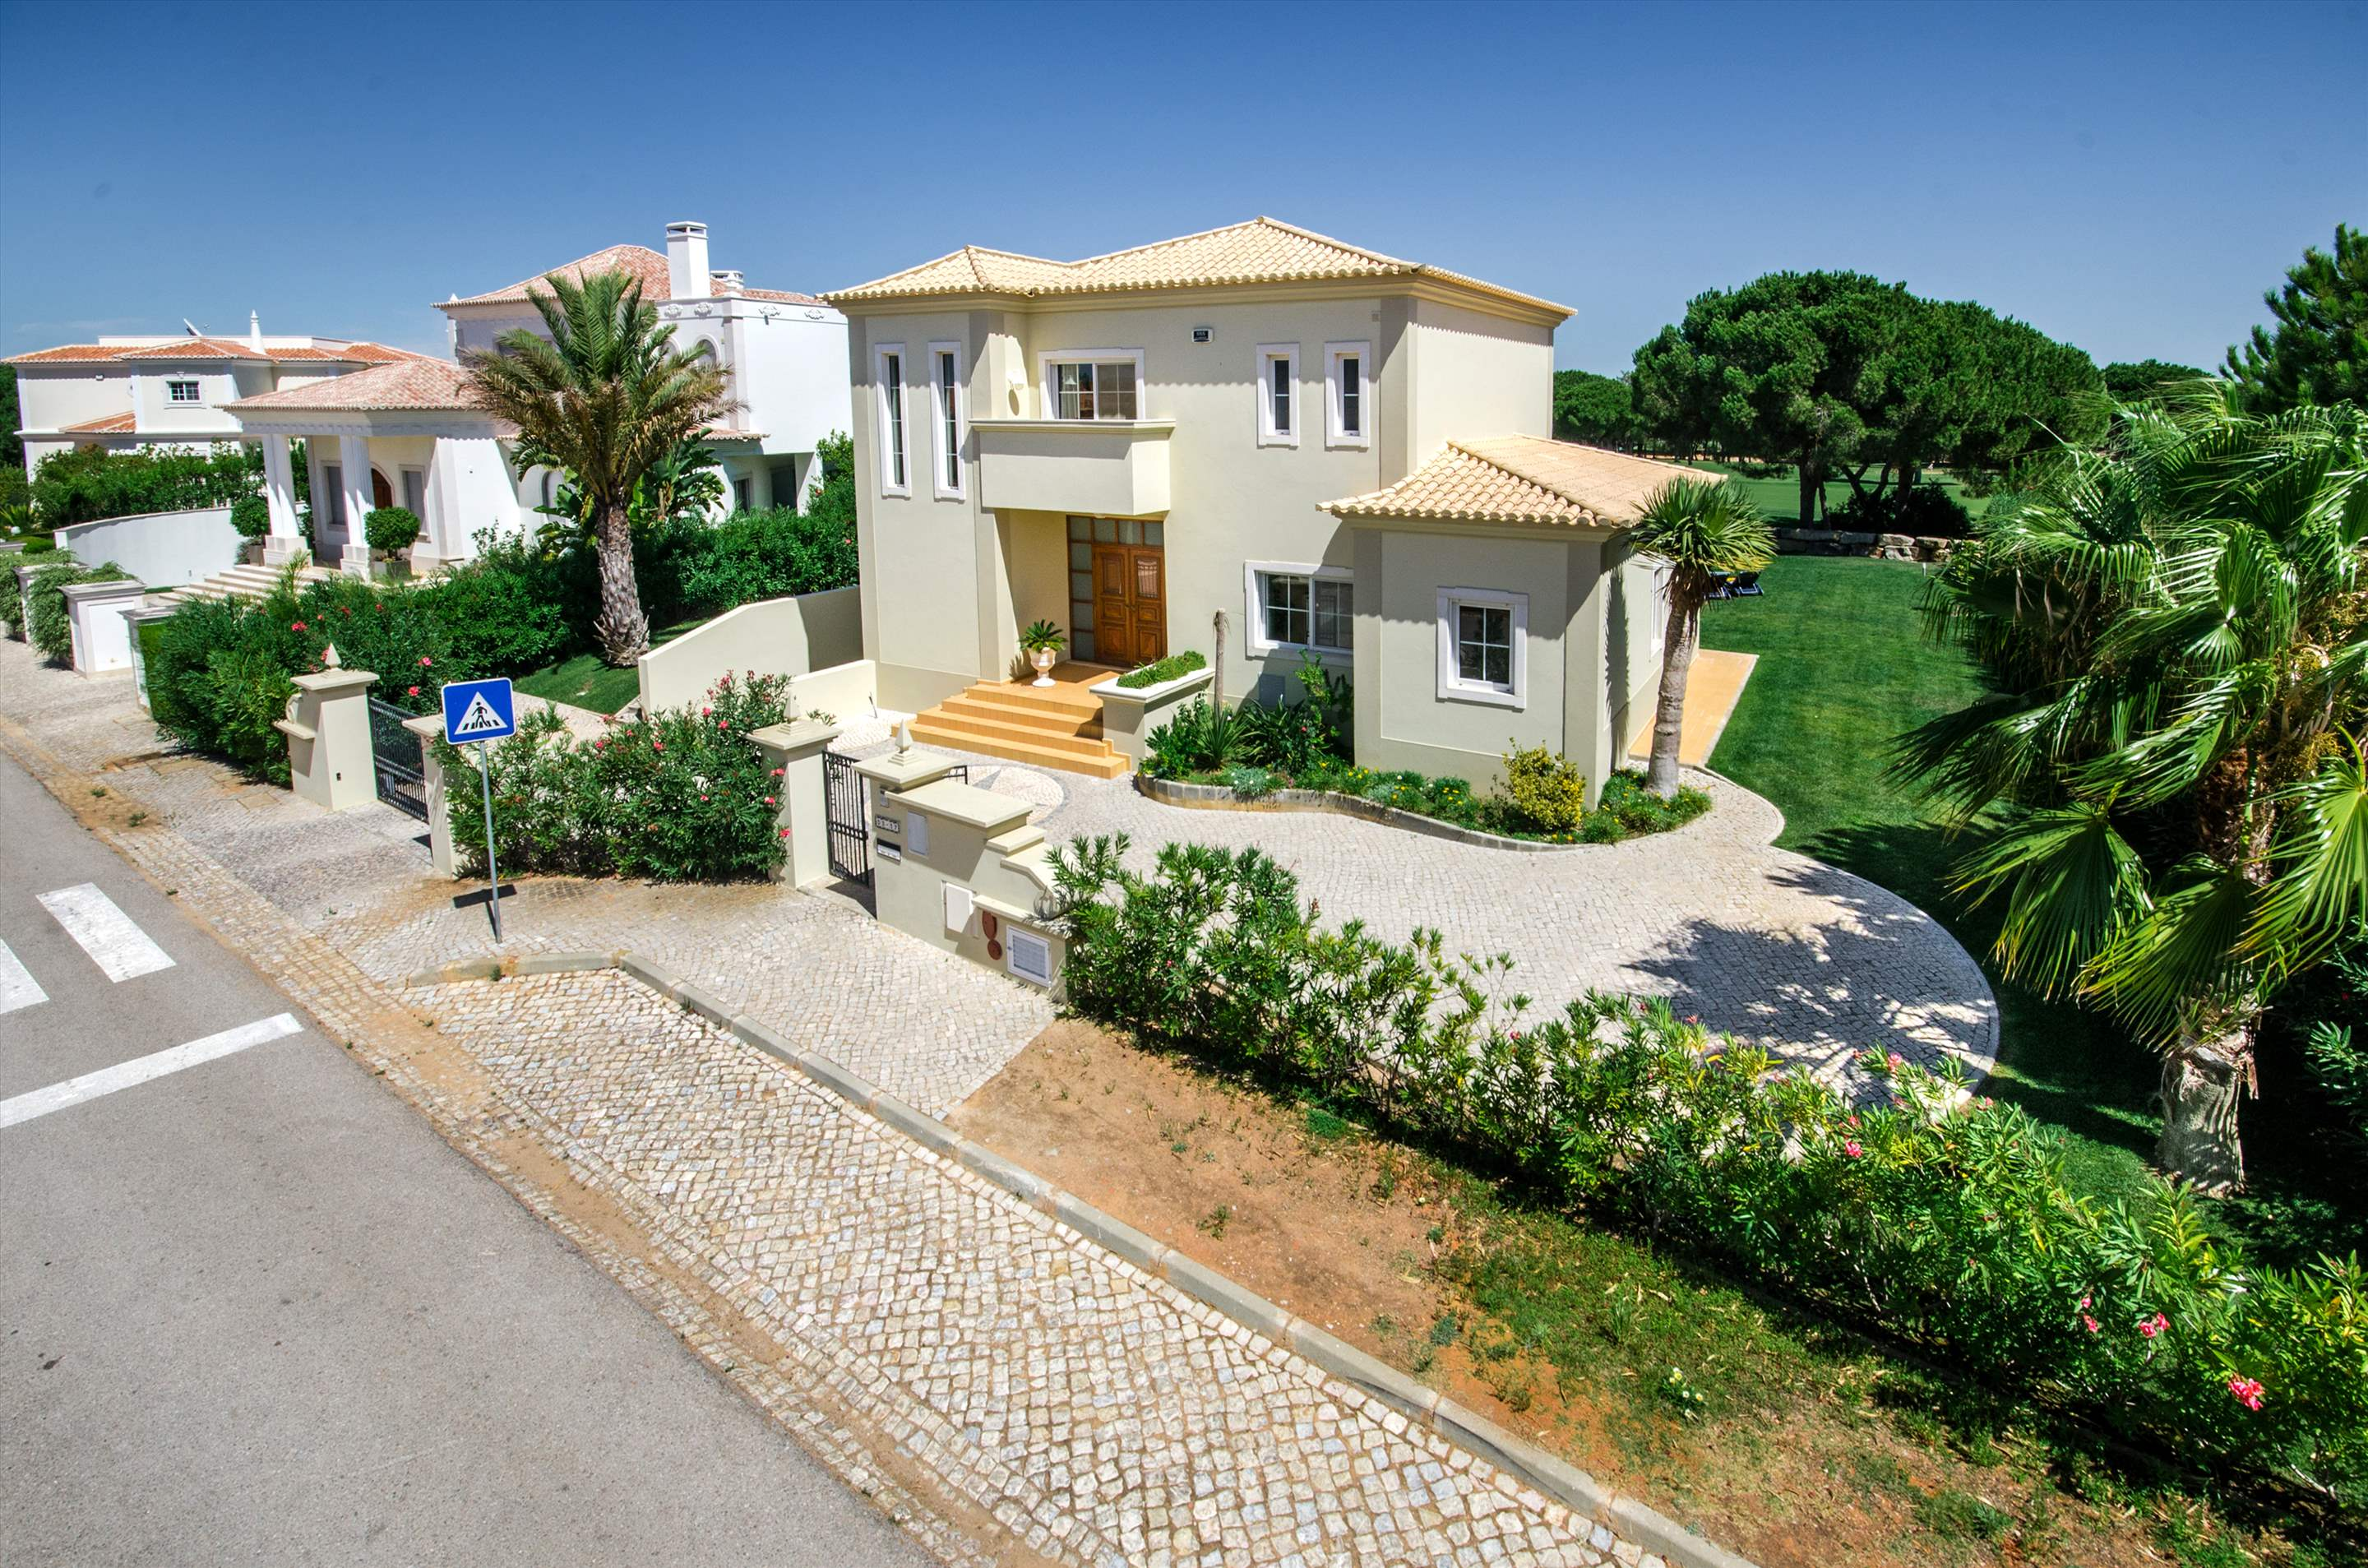 Villa Alexa, 4 bedroom villa in Vilamoura Area, Algarve Photo #12